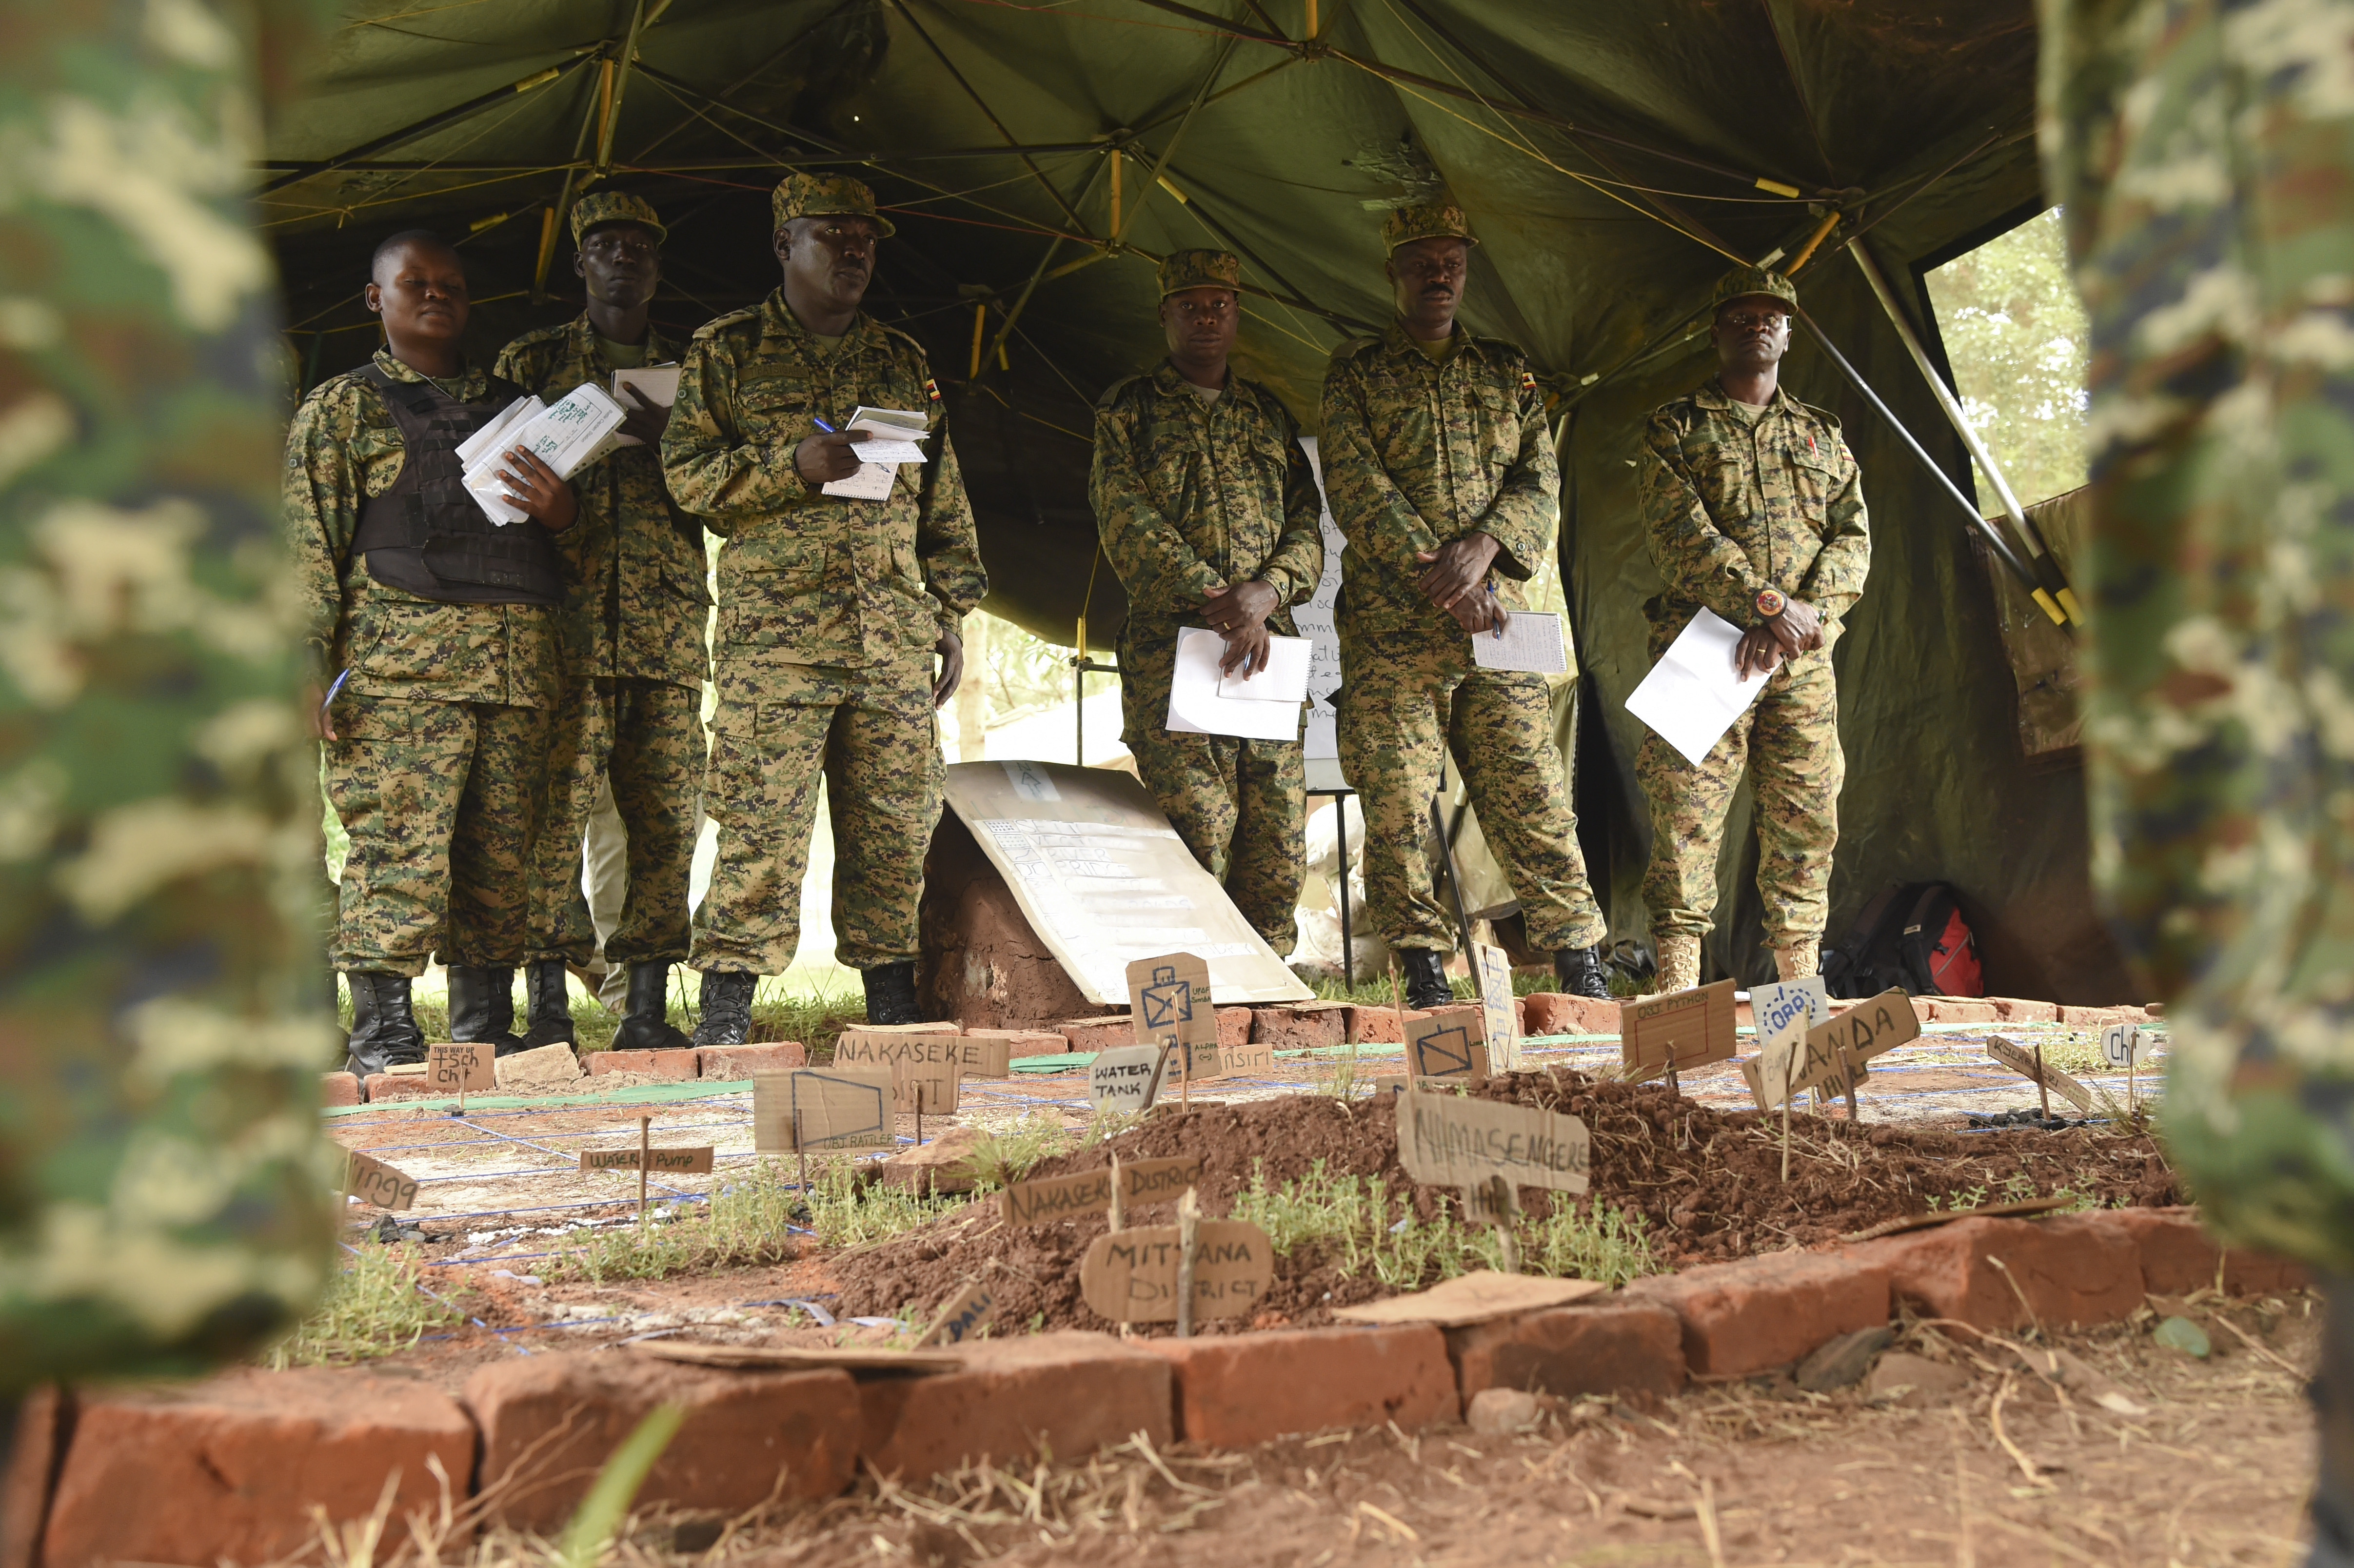 Uganda People's Defense Force (UPDF) soldiers receive a briefing over a terrain model at Camp Singo, Feb. 28, 2017. The UPDF's Ugandan Battle Group 22 received pre-deployment training from allied forces and subject matter experts to increase their readiness and better prepare forces to respond to issues in their region. (U.S. Air National Guard photo by Staff Sgt. Penny Snoozy)